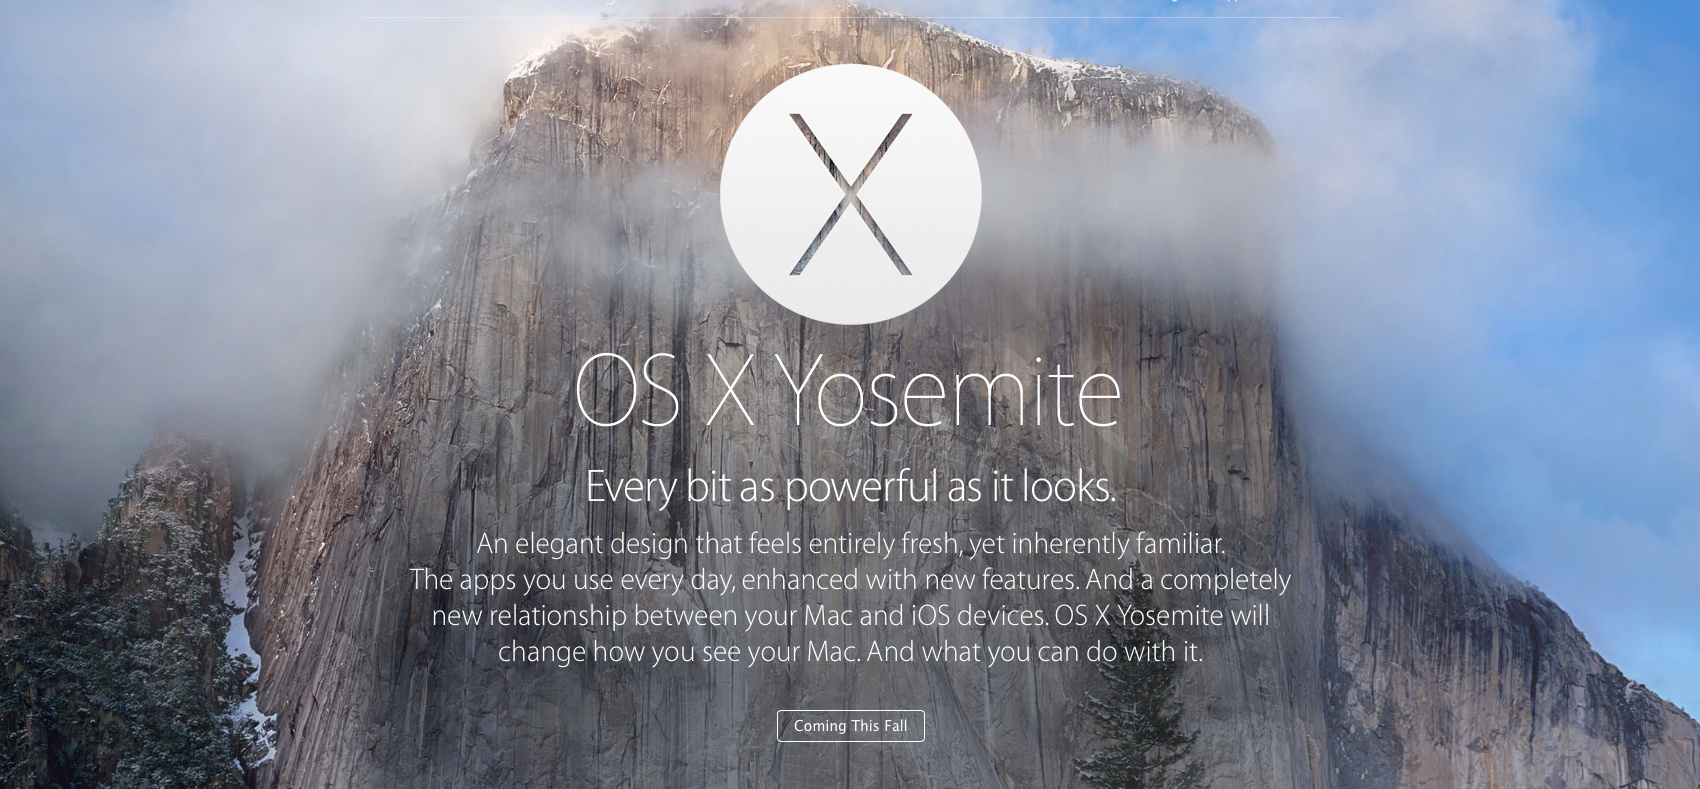 Apple_-_OS X_Yosemite_-_Overview